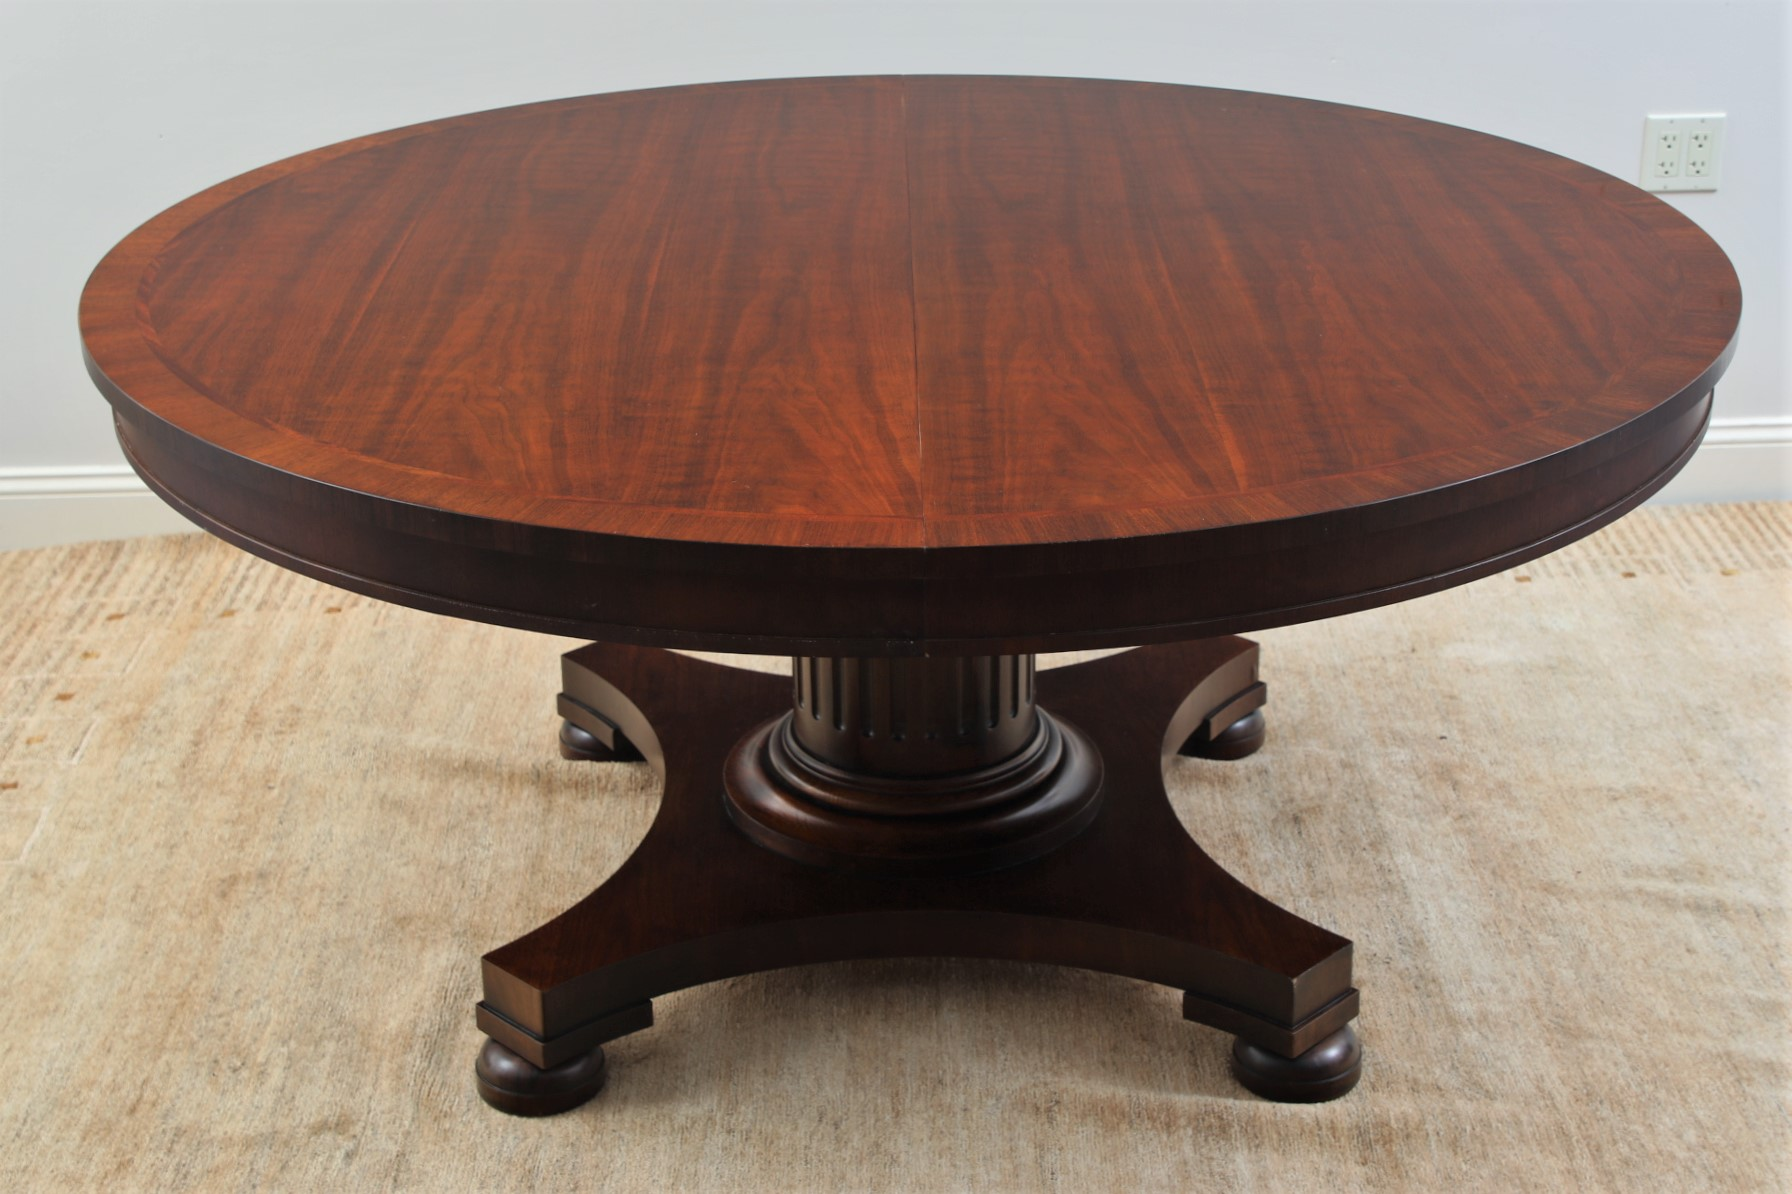 Elegant Ralph Lauren 64 Quot Round Pedestal Dining Table With